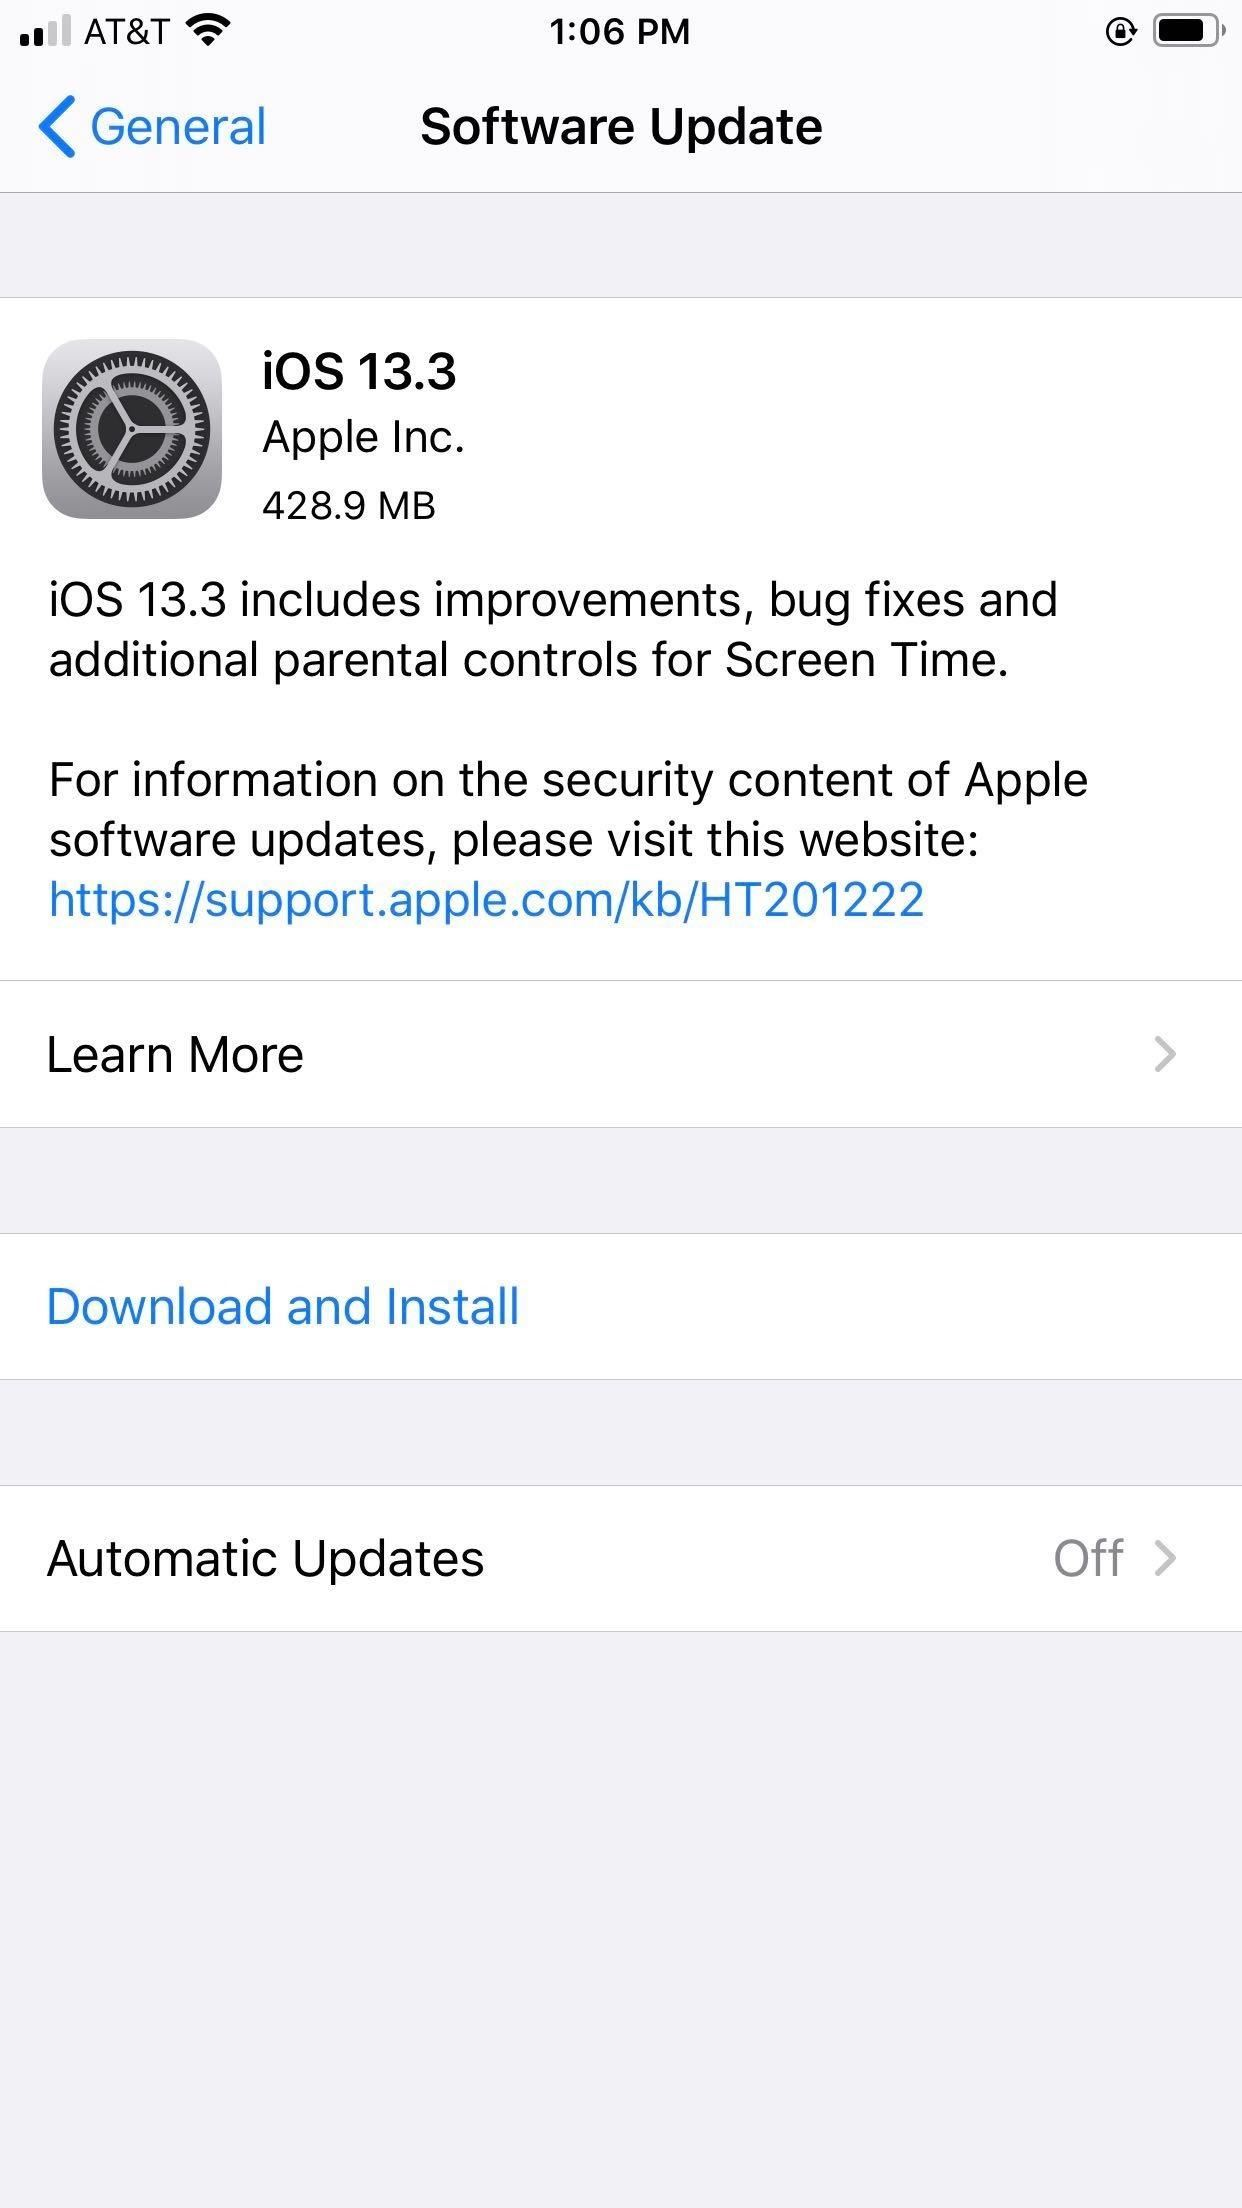 Apple's iOS 13.3 released for the iPhone, Includes power button for Memoji sticker, new mouse options and more